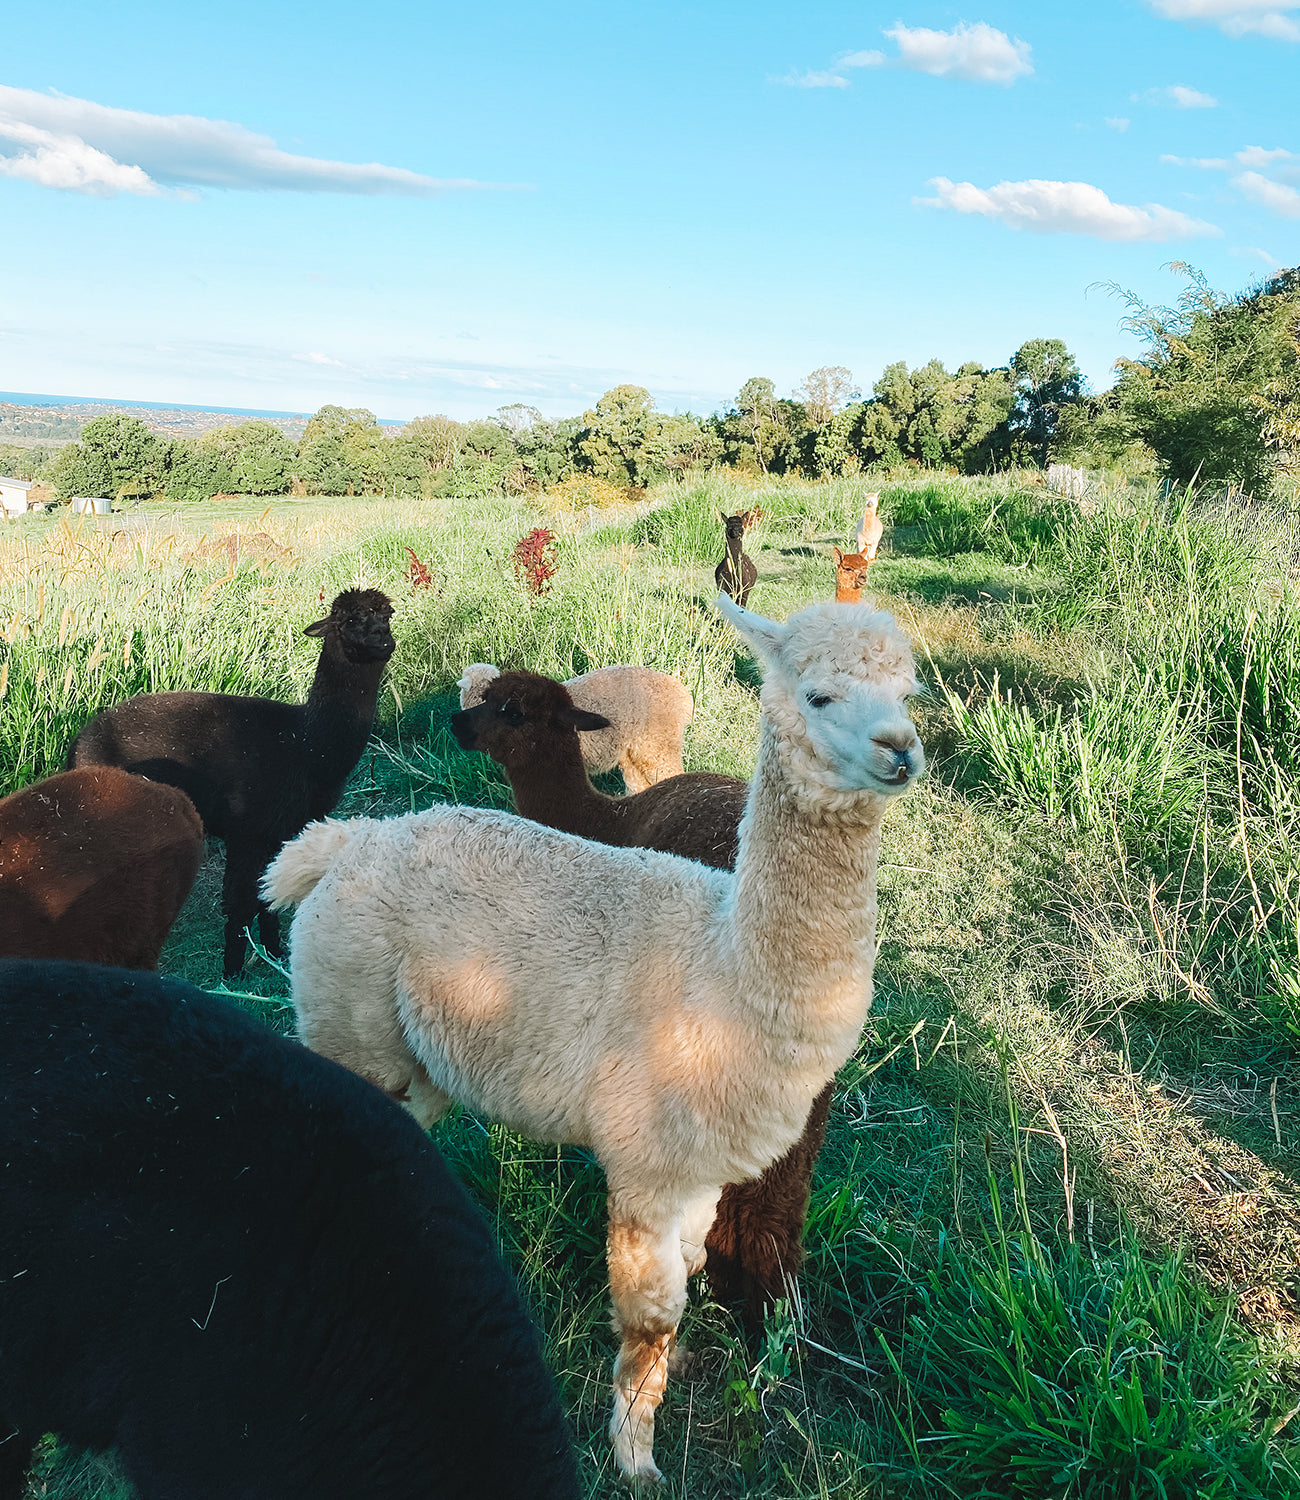 Llamas rotate around the farm and provide manure to fertilise soil at Ellas Permaculture Farm